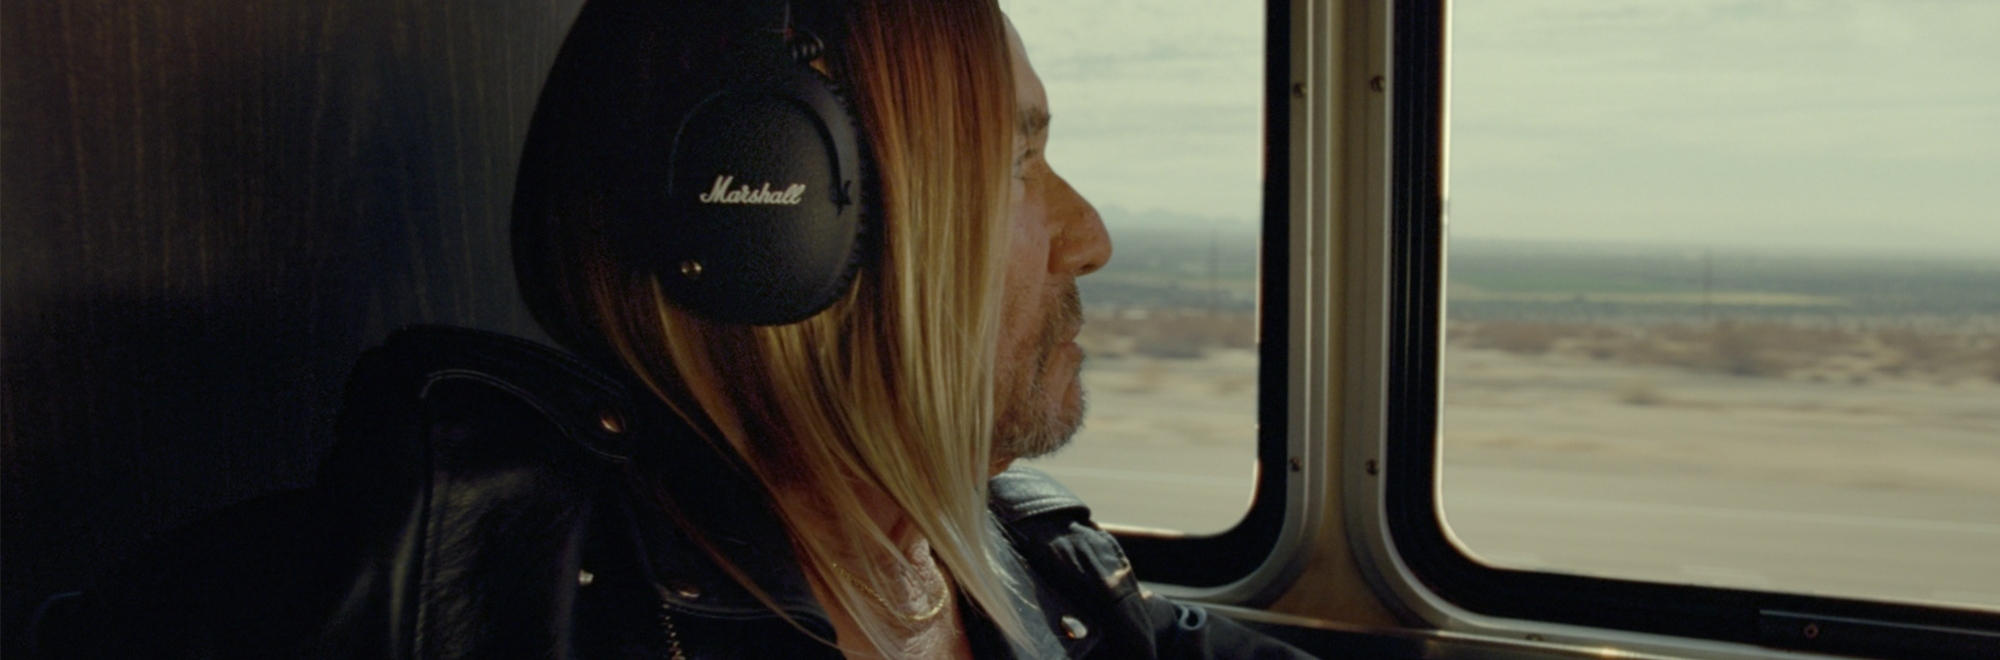 Wonderfully rebellious film starring Iggy Pop for heritage brand Marshall